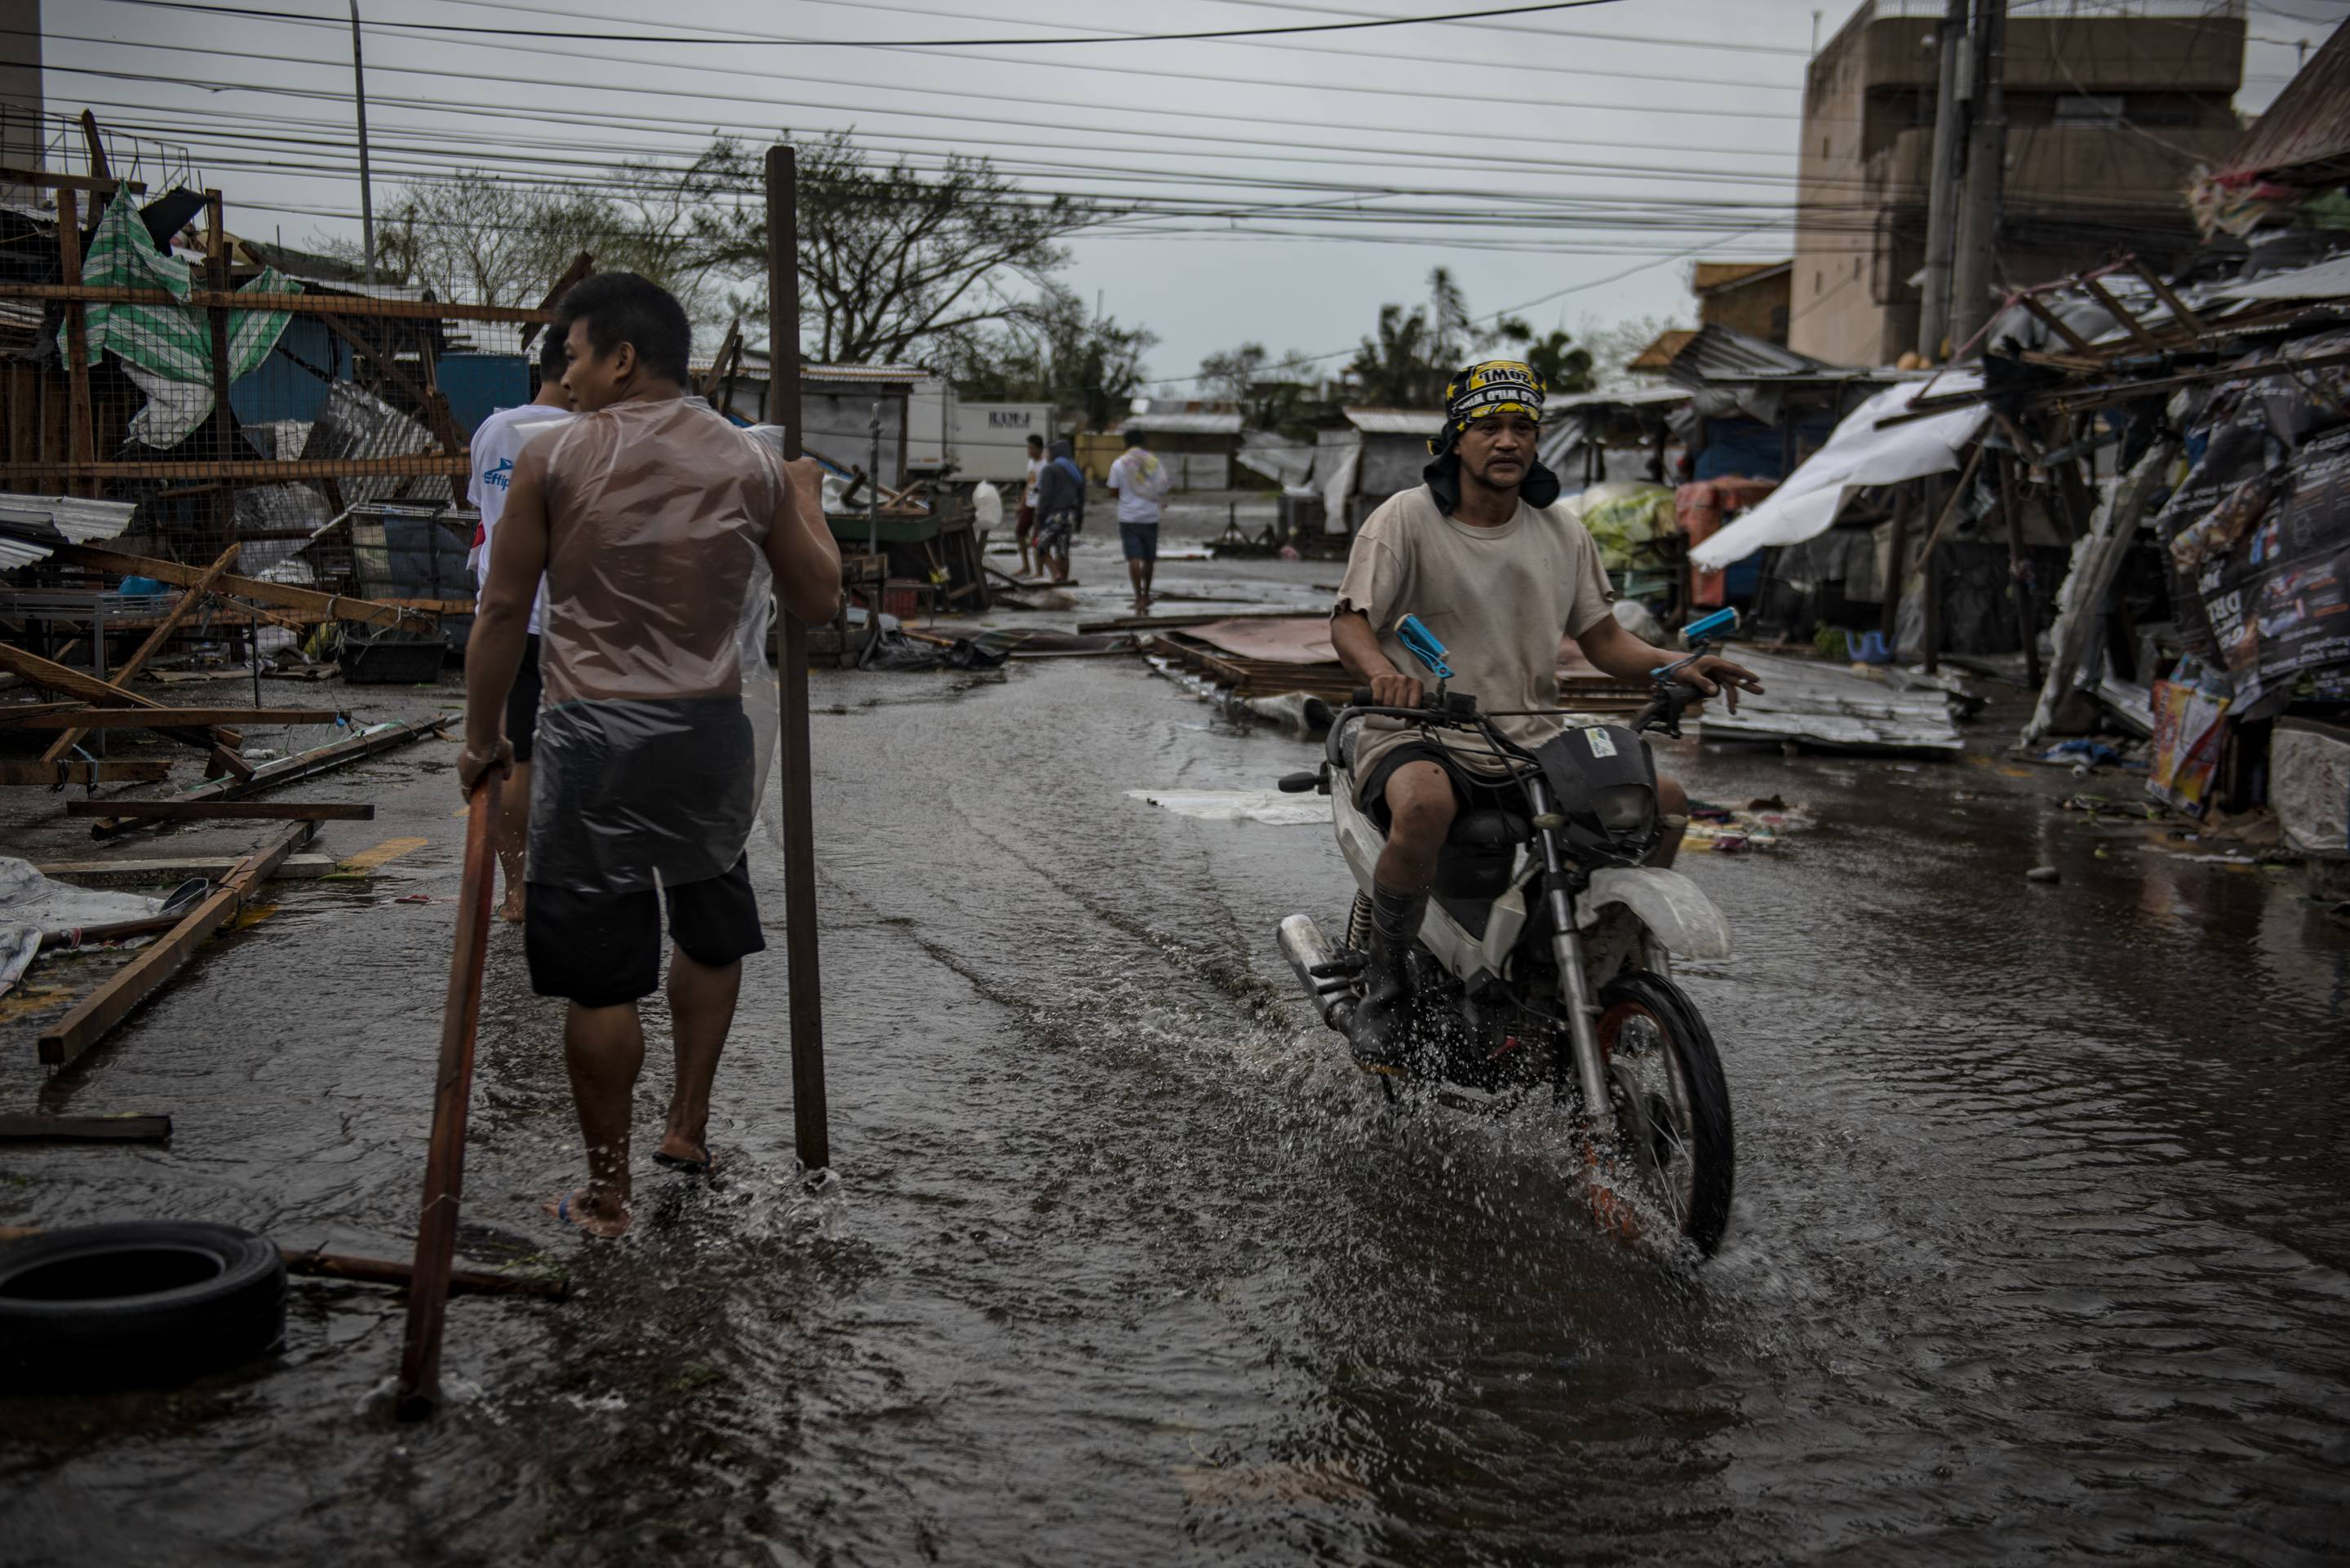 Super Typhoon Mangkhut Batters the Philippines as it Makes Landfall